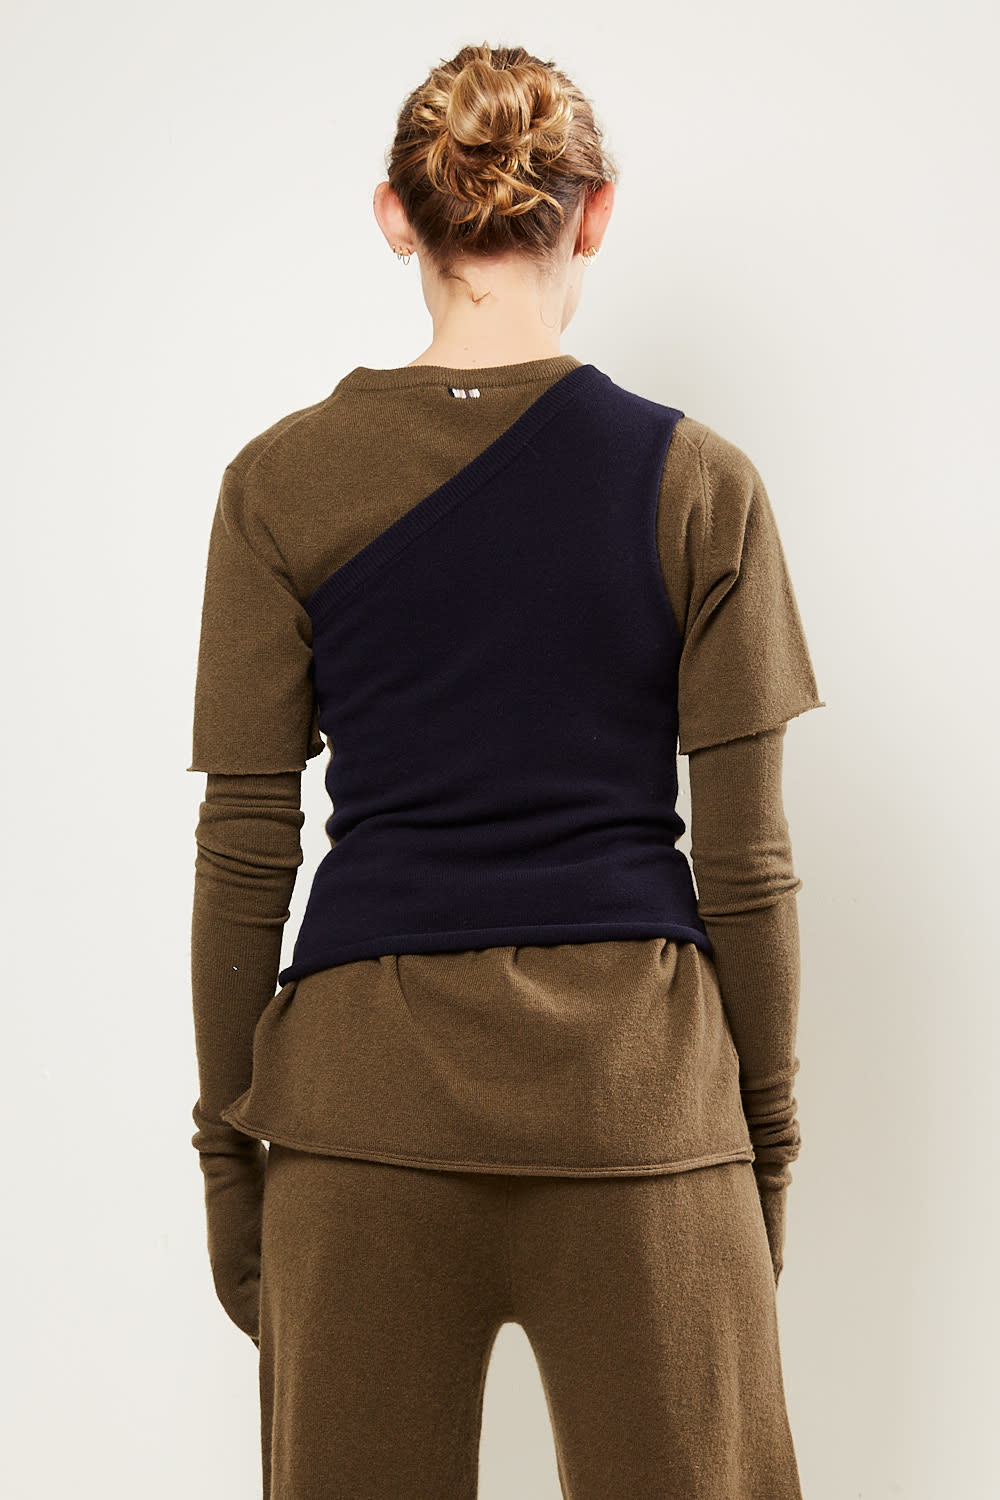 extreme cashmere - No108 asymetric one shoulder top brown navy